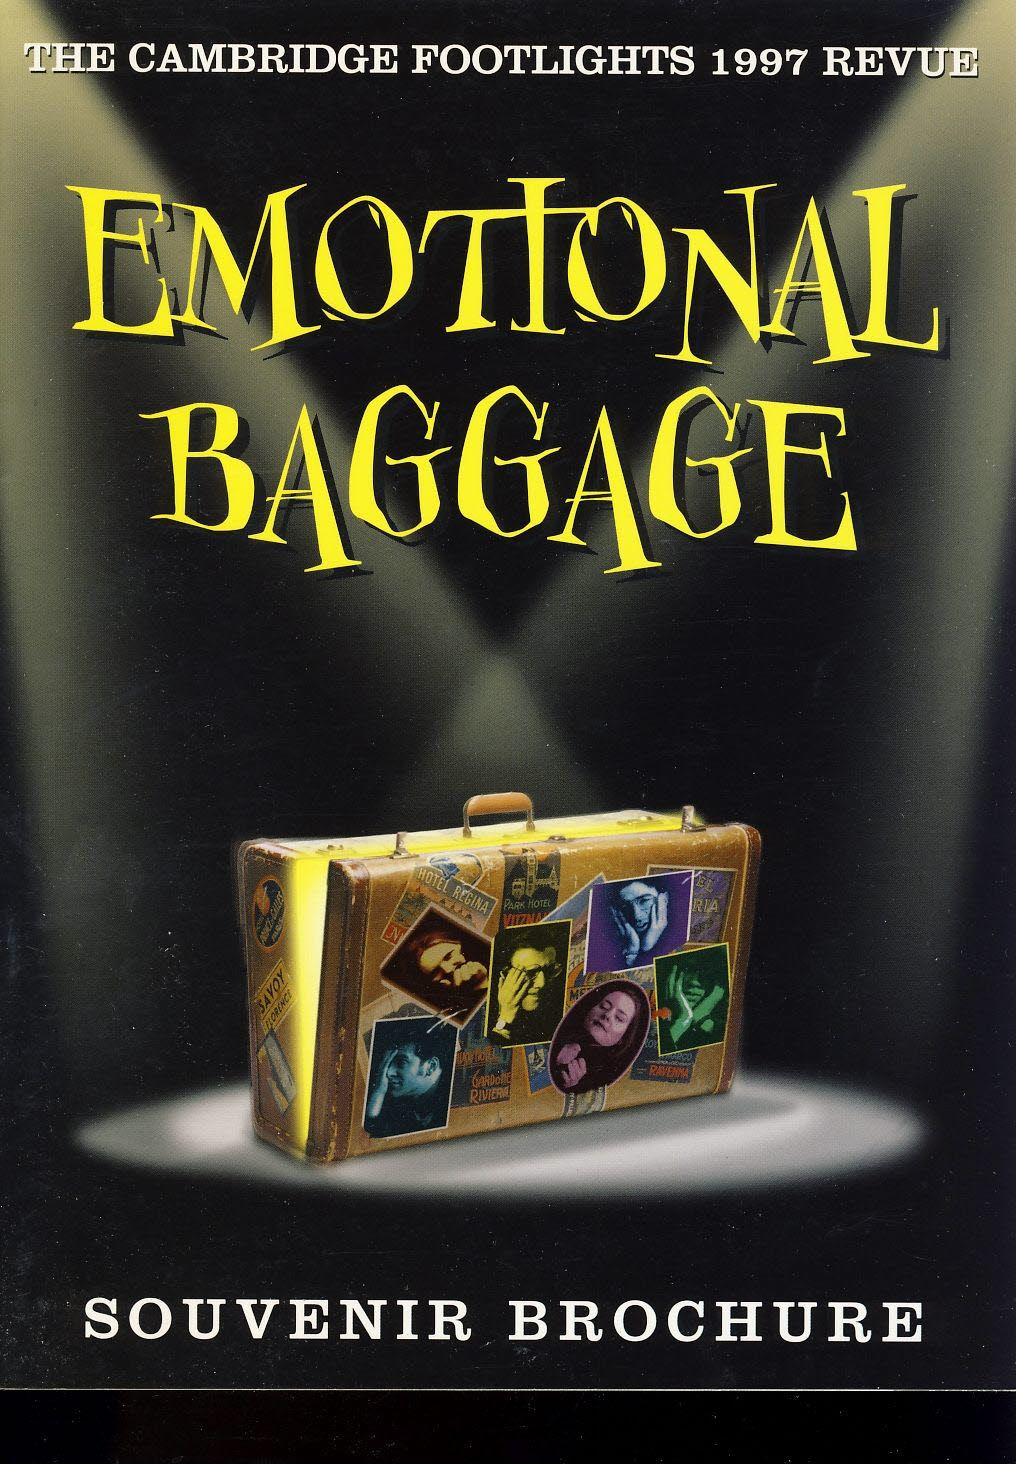 1997 Cambridge Footlights EMOTIONAL BAGGAGE Souvenir Brochure b1055,1997 Cambridge Footlights EMOTIONAL BAGGAGE Souvenir Brochure b1055. Theatre Programme is in Very Good Used Condition. Please see photo and read full description. Measures approx 17cm x 24cm., #TheatreProgrammes